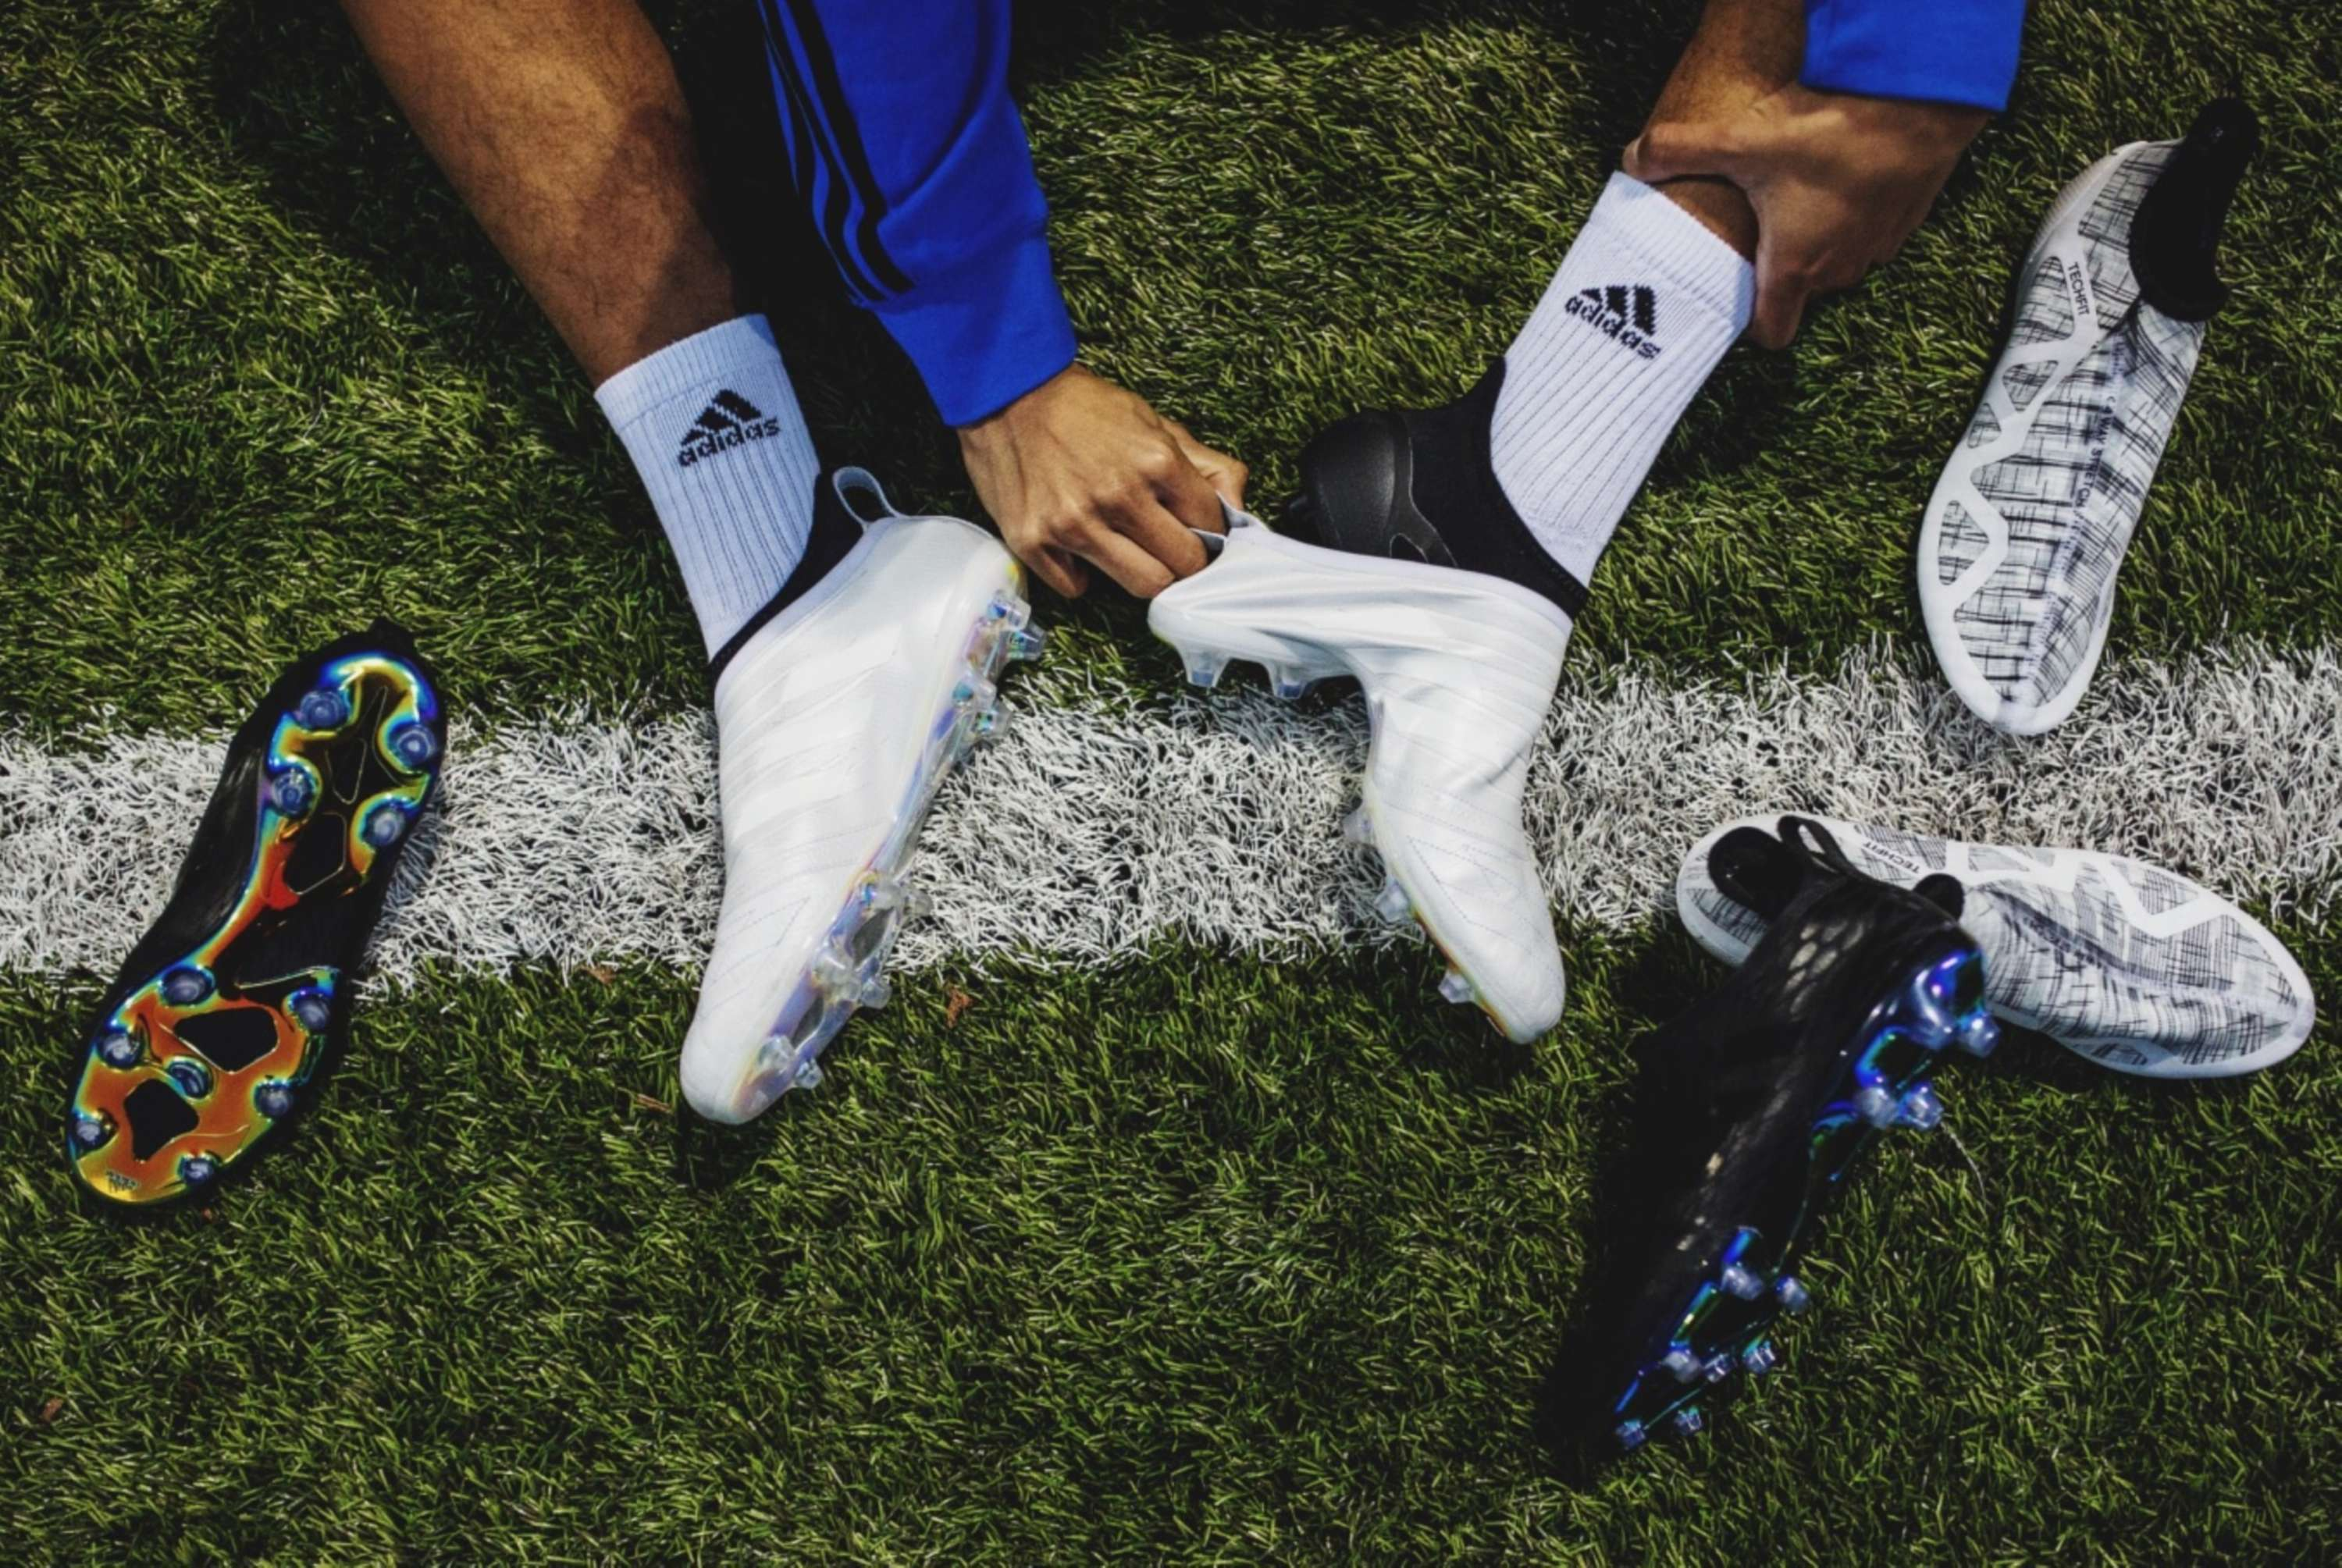 2e61bb848f14 Forget everything you know about the process of launching a product. Your  standard football boot launch has been rolled out a million times. For  GLITCH ...